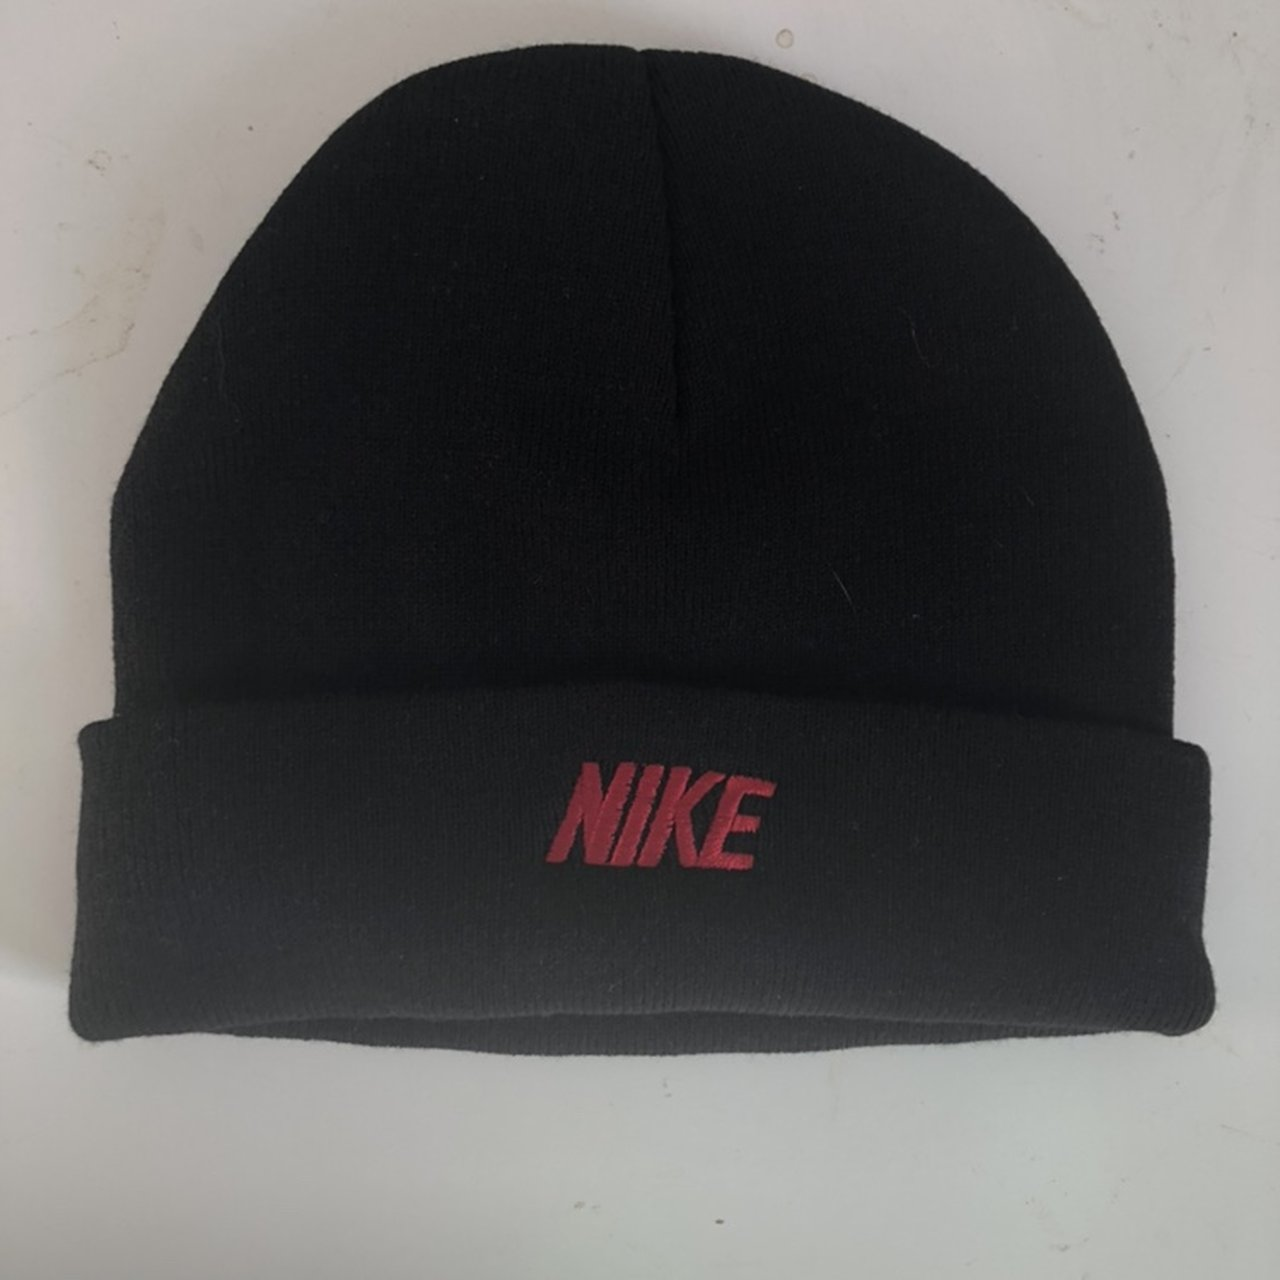 caf7fc3fd1d Nike Beanie Hat in black and red Brand new but without tags - Depop